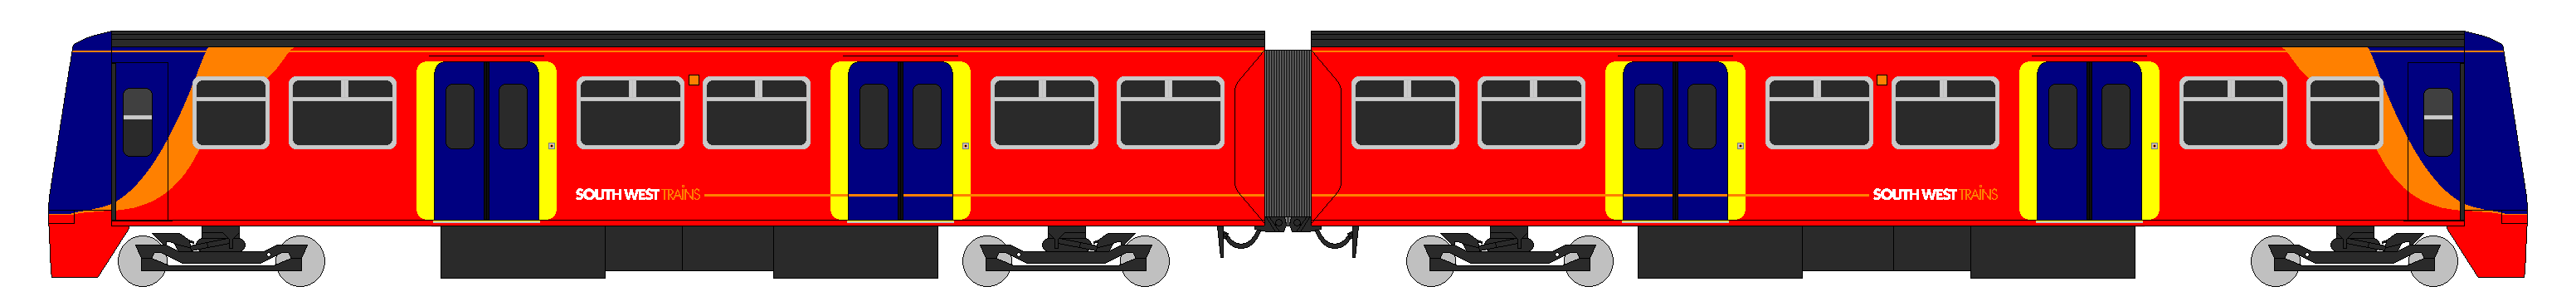 Class 456 South West Trains Diagram